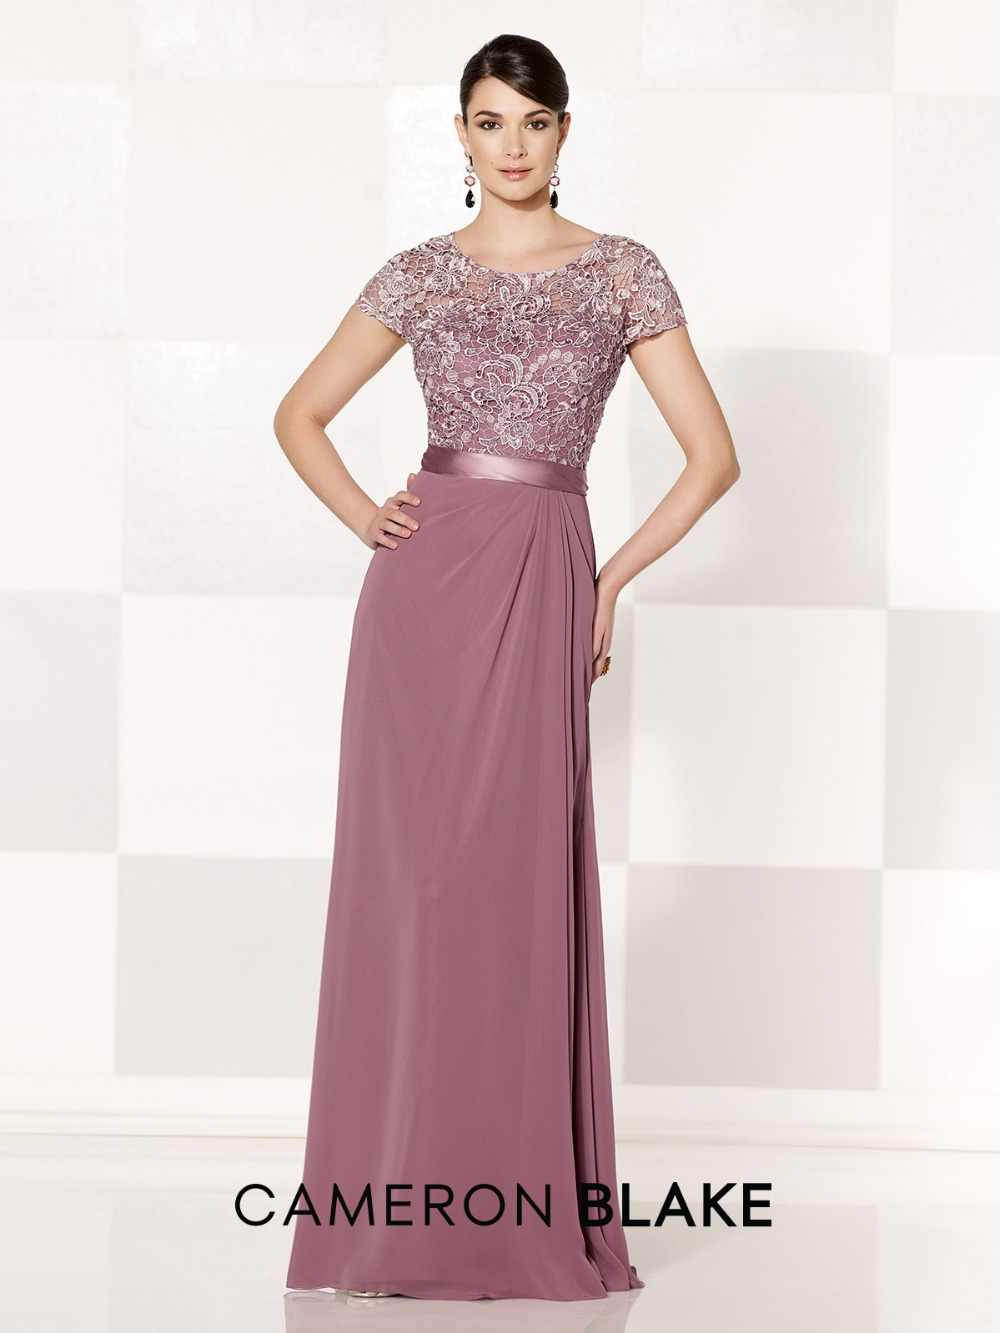 64b7a4fdc97 ... New Arrival Simple Chiffon Lace Mother of the Bride Dresses Plus Dresses  Cap Sleeves Pink Evening ...